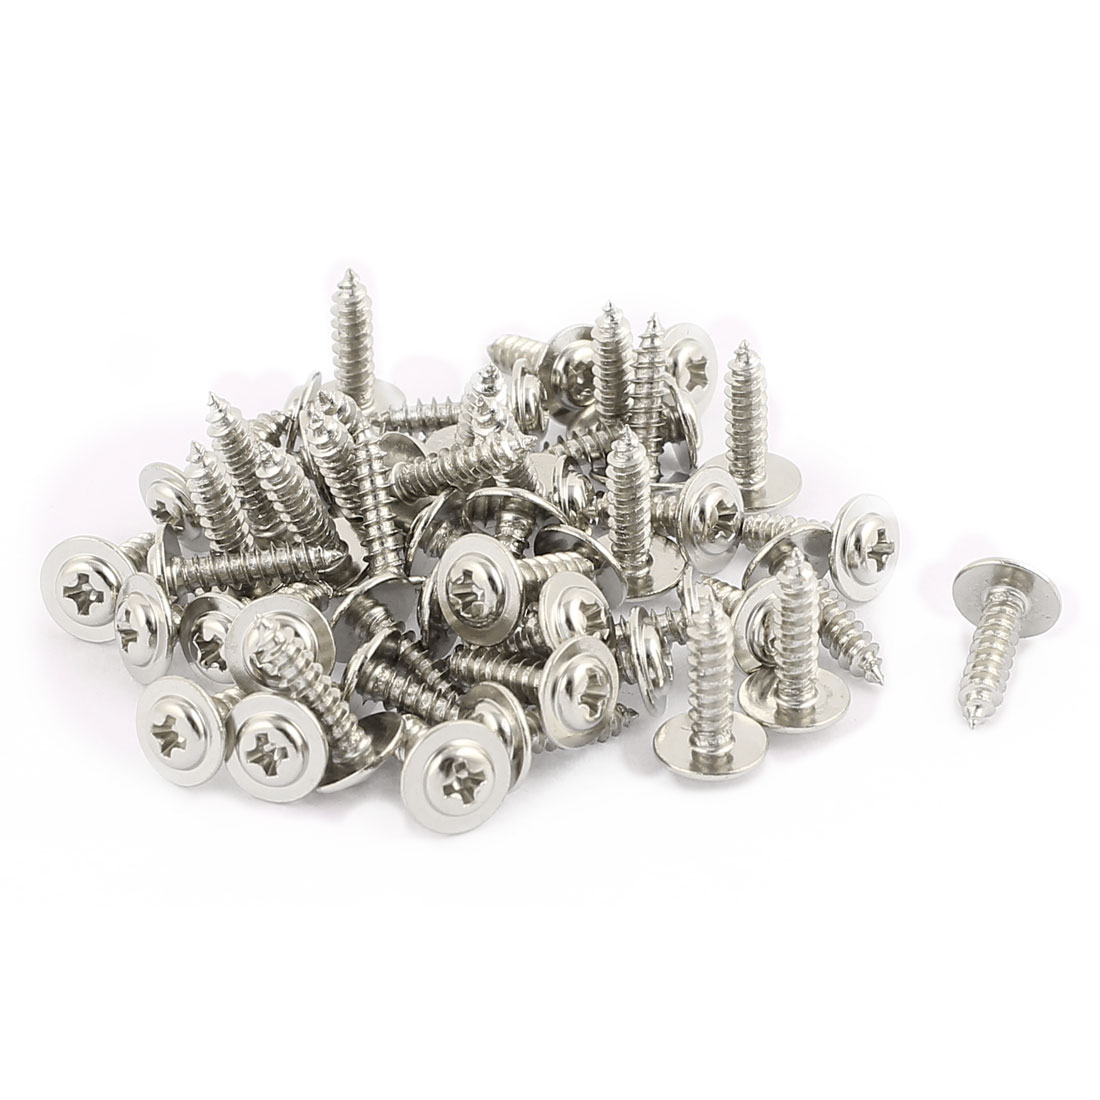 10x2.5 Stainless Steel Phillips Head Self-Tapping Screw with Washer Fastener x50